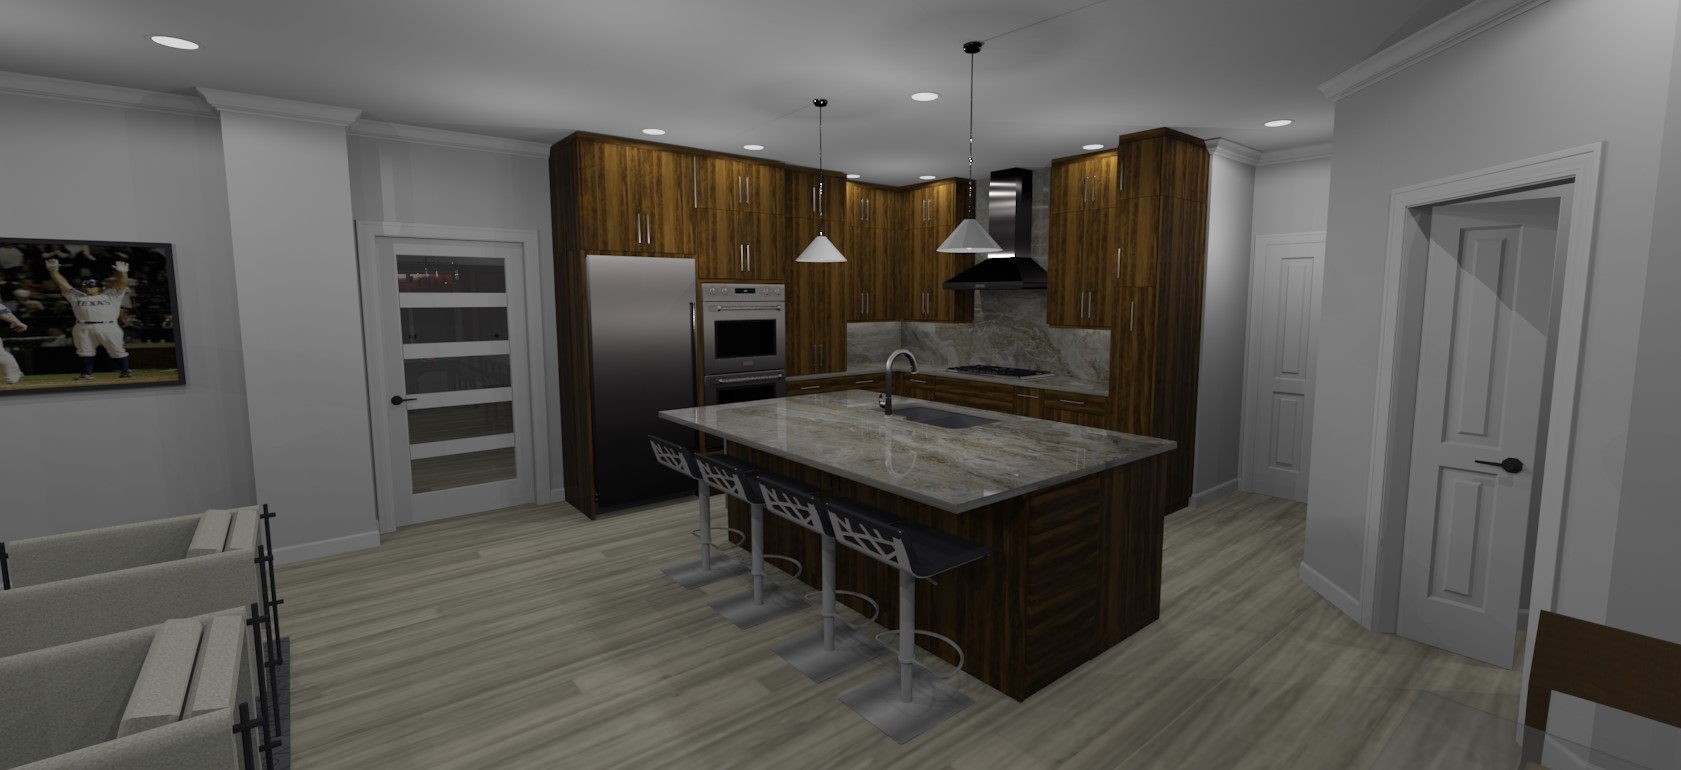 3D rendering of full kitchen remodel in north texas